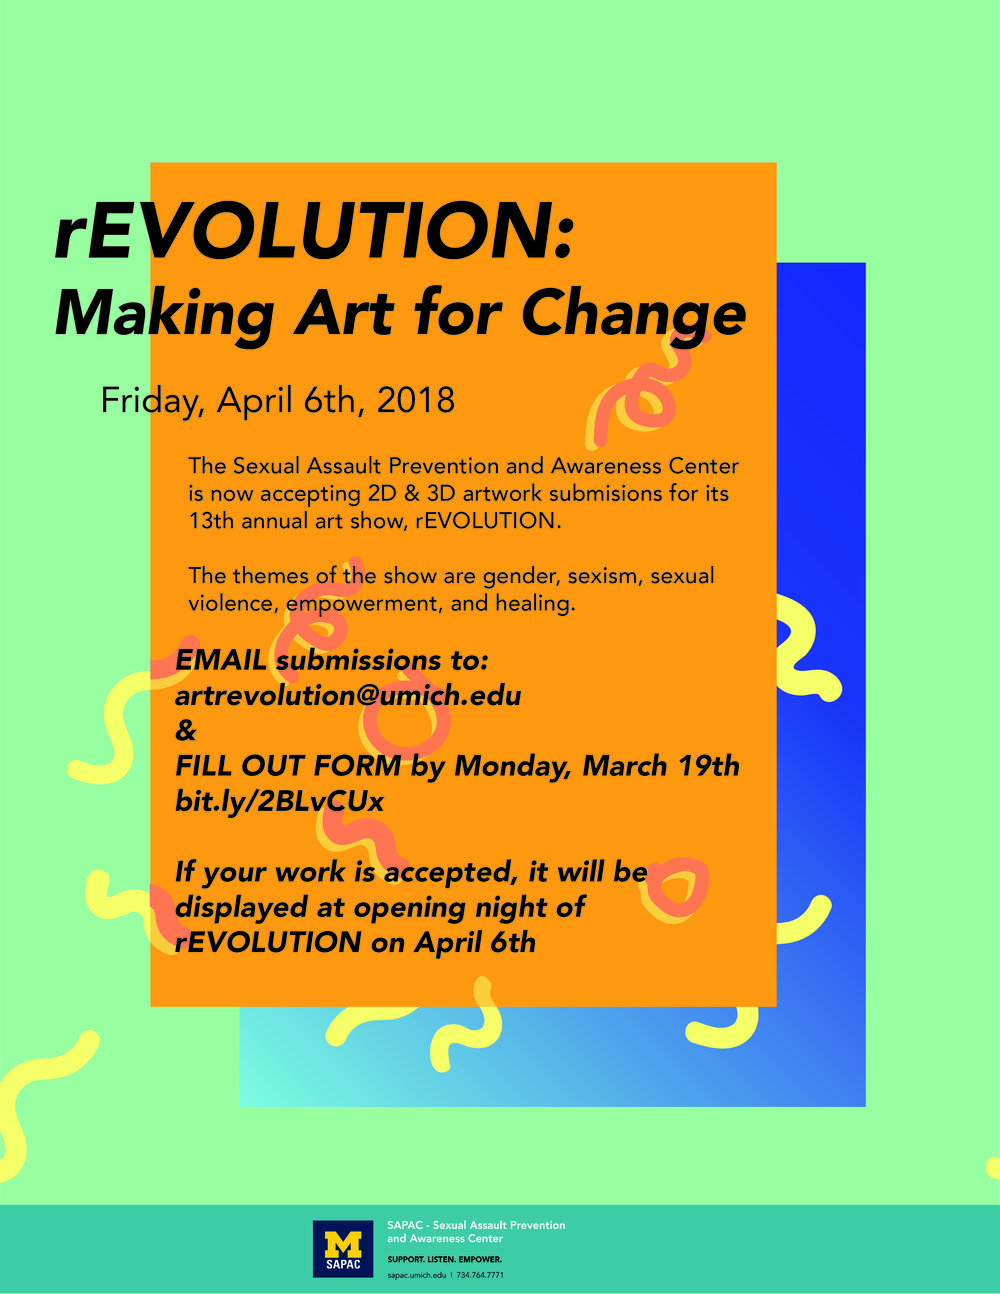 Poster for the annual art show, rEVOLUTION